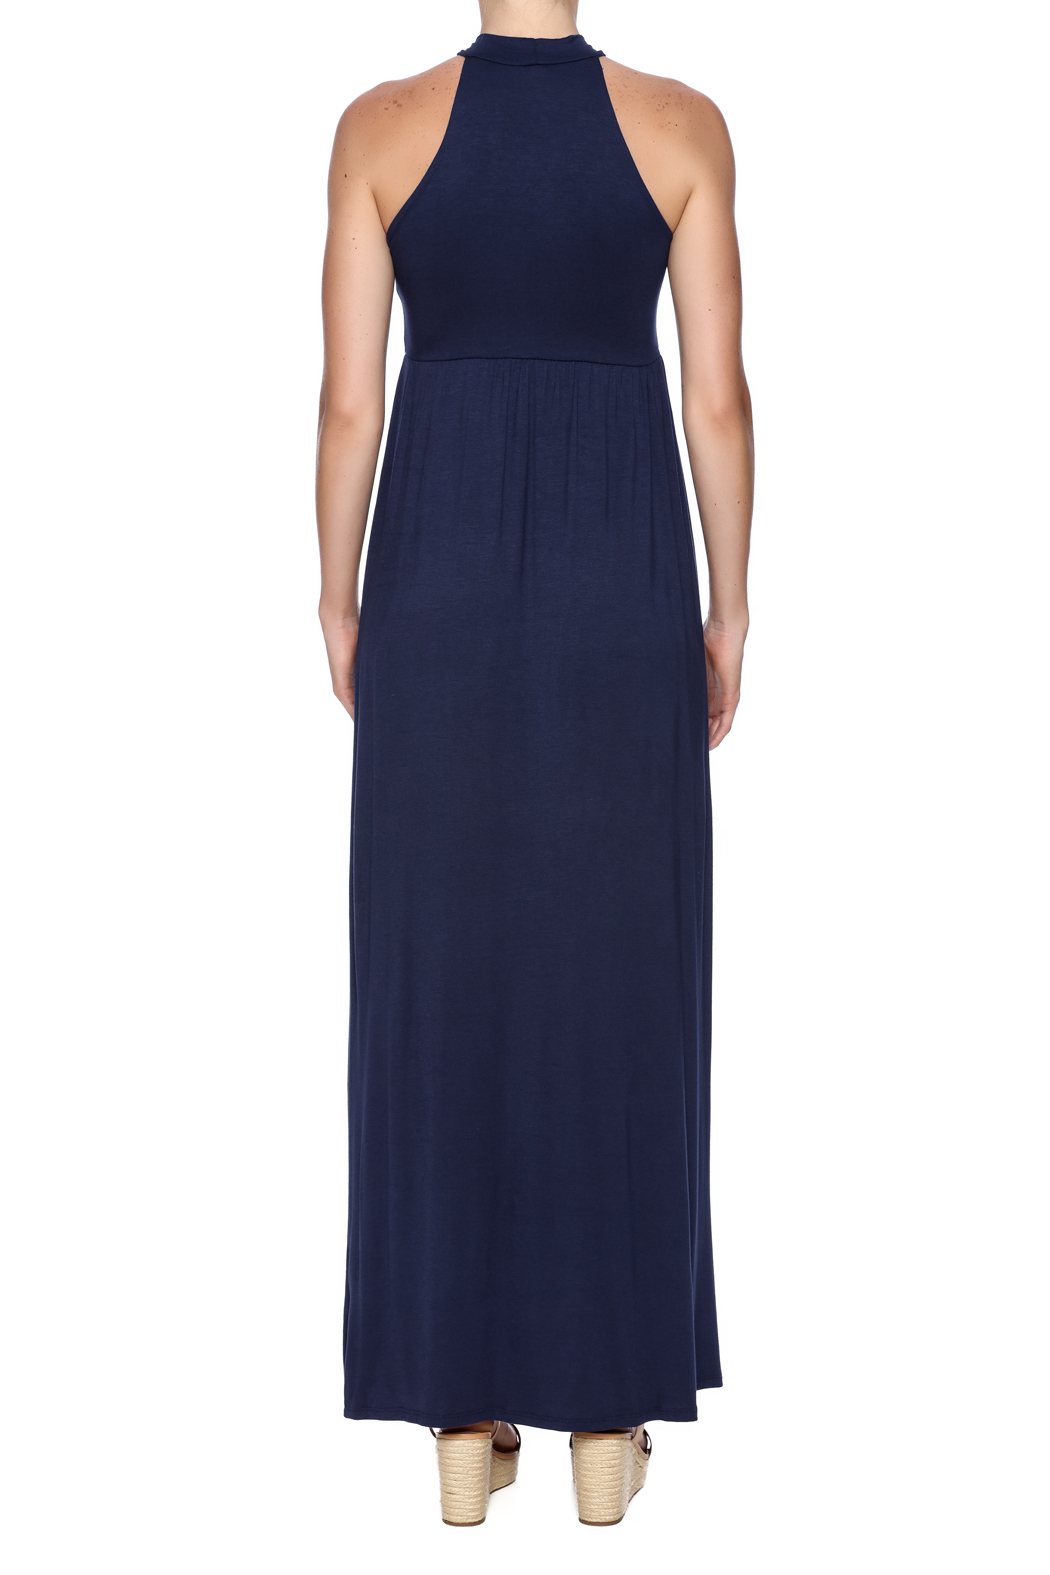 Bellamie Sophia Maxi Dress - Back Cropped Image